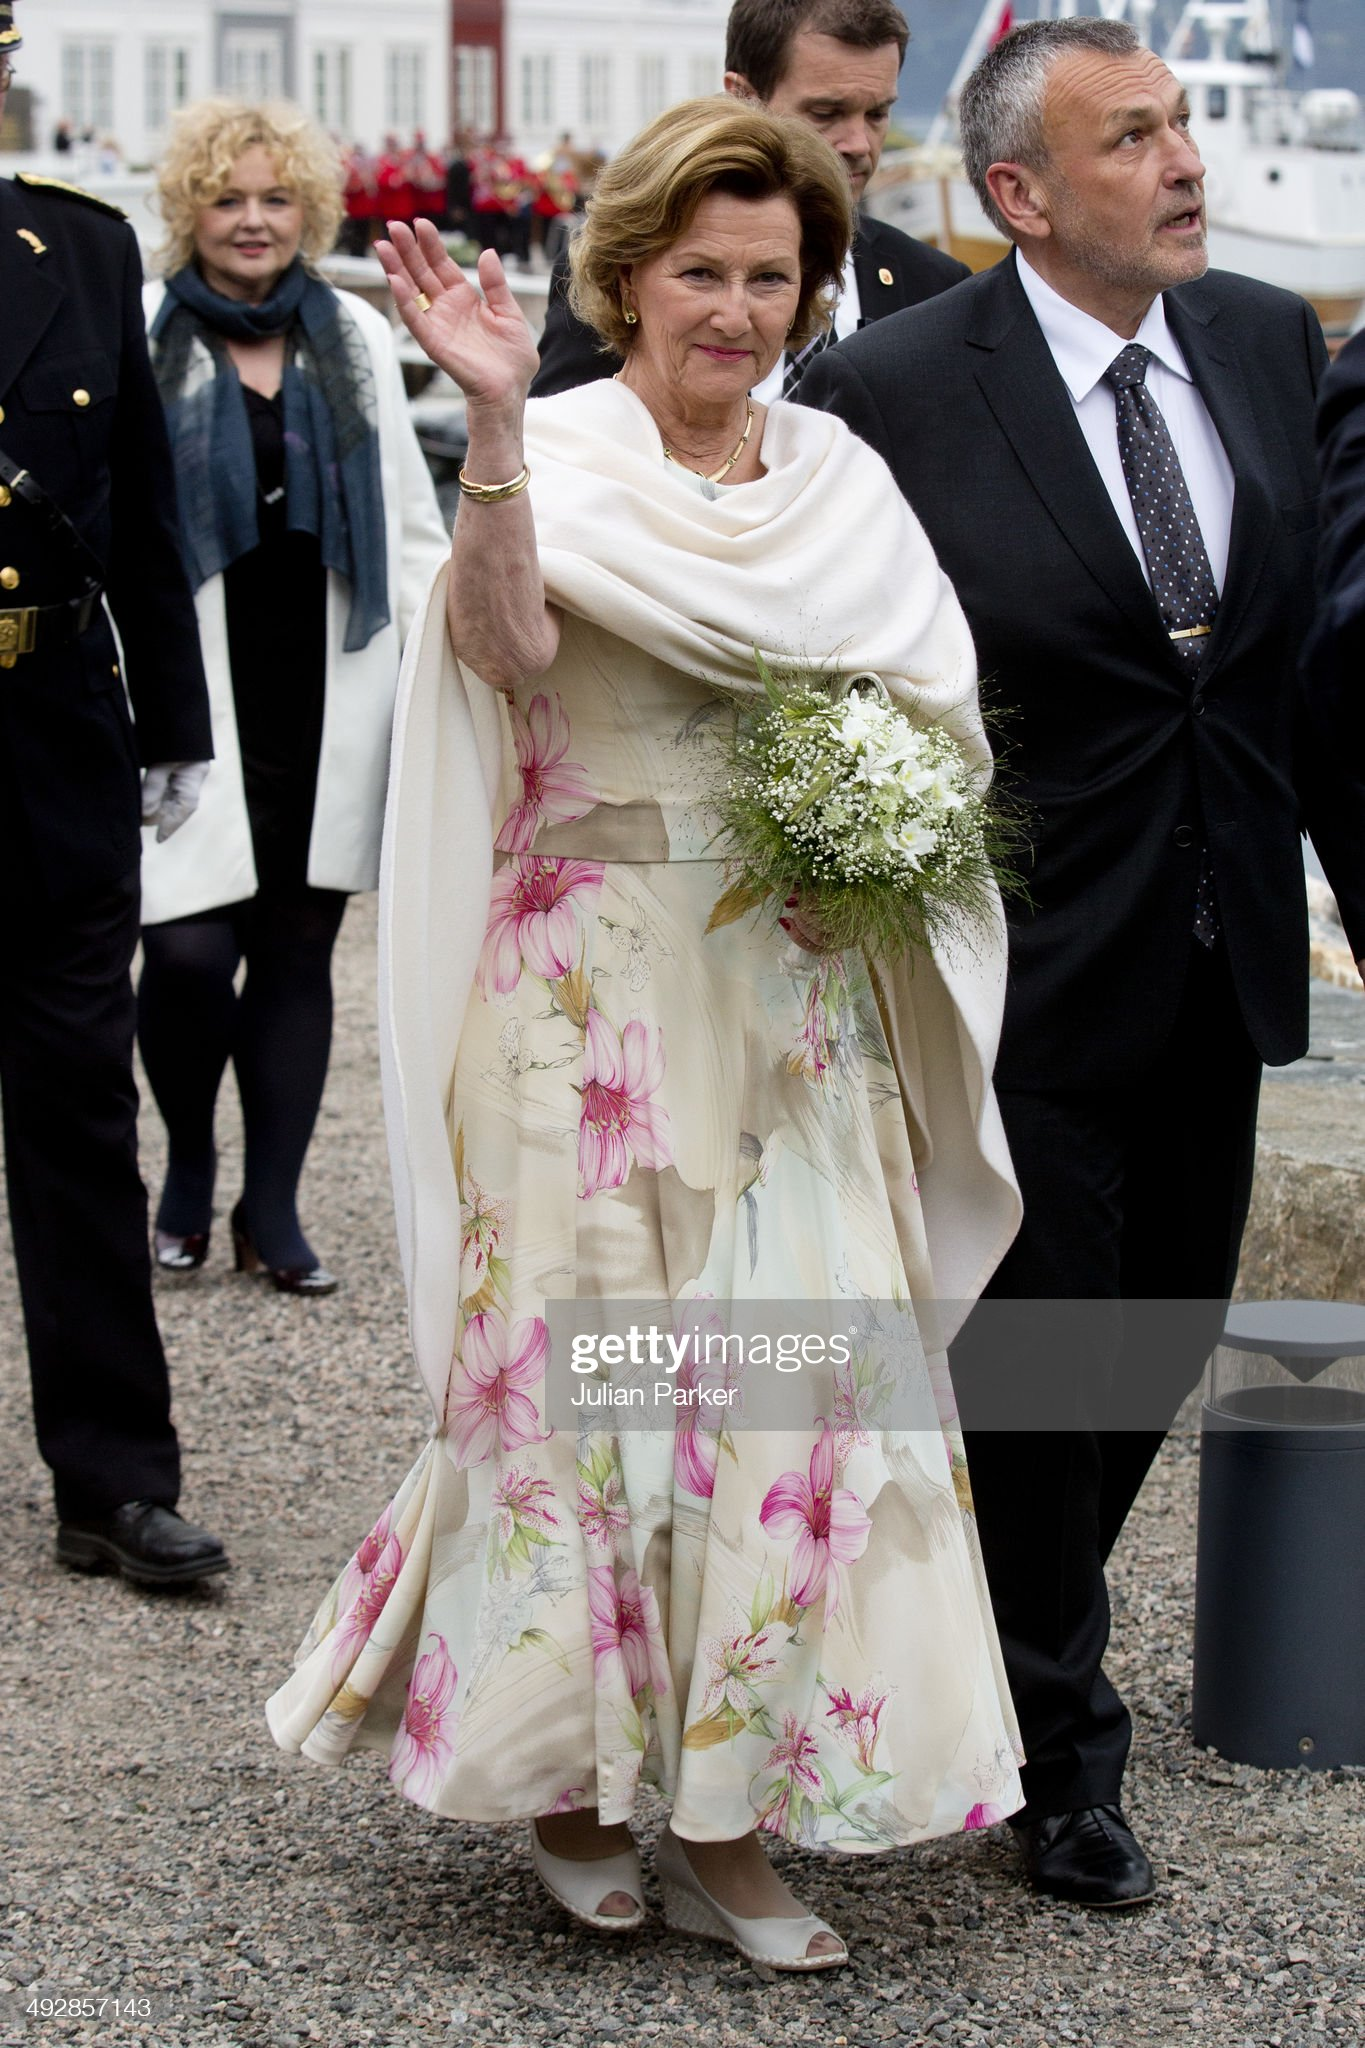 King Harald And Queen Sonja Of Norway Visit More And Romsdal County In Norway - Day 1 : News Photo